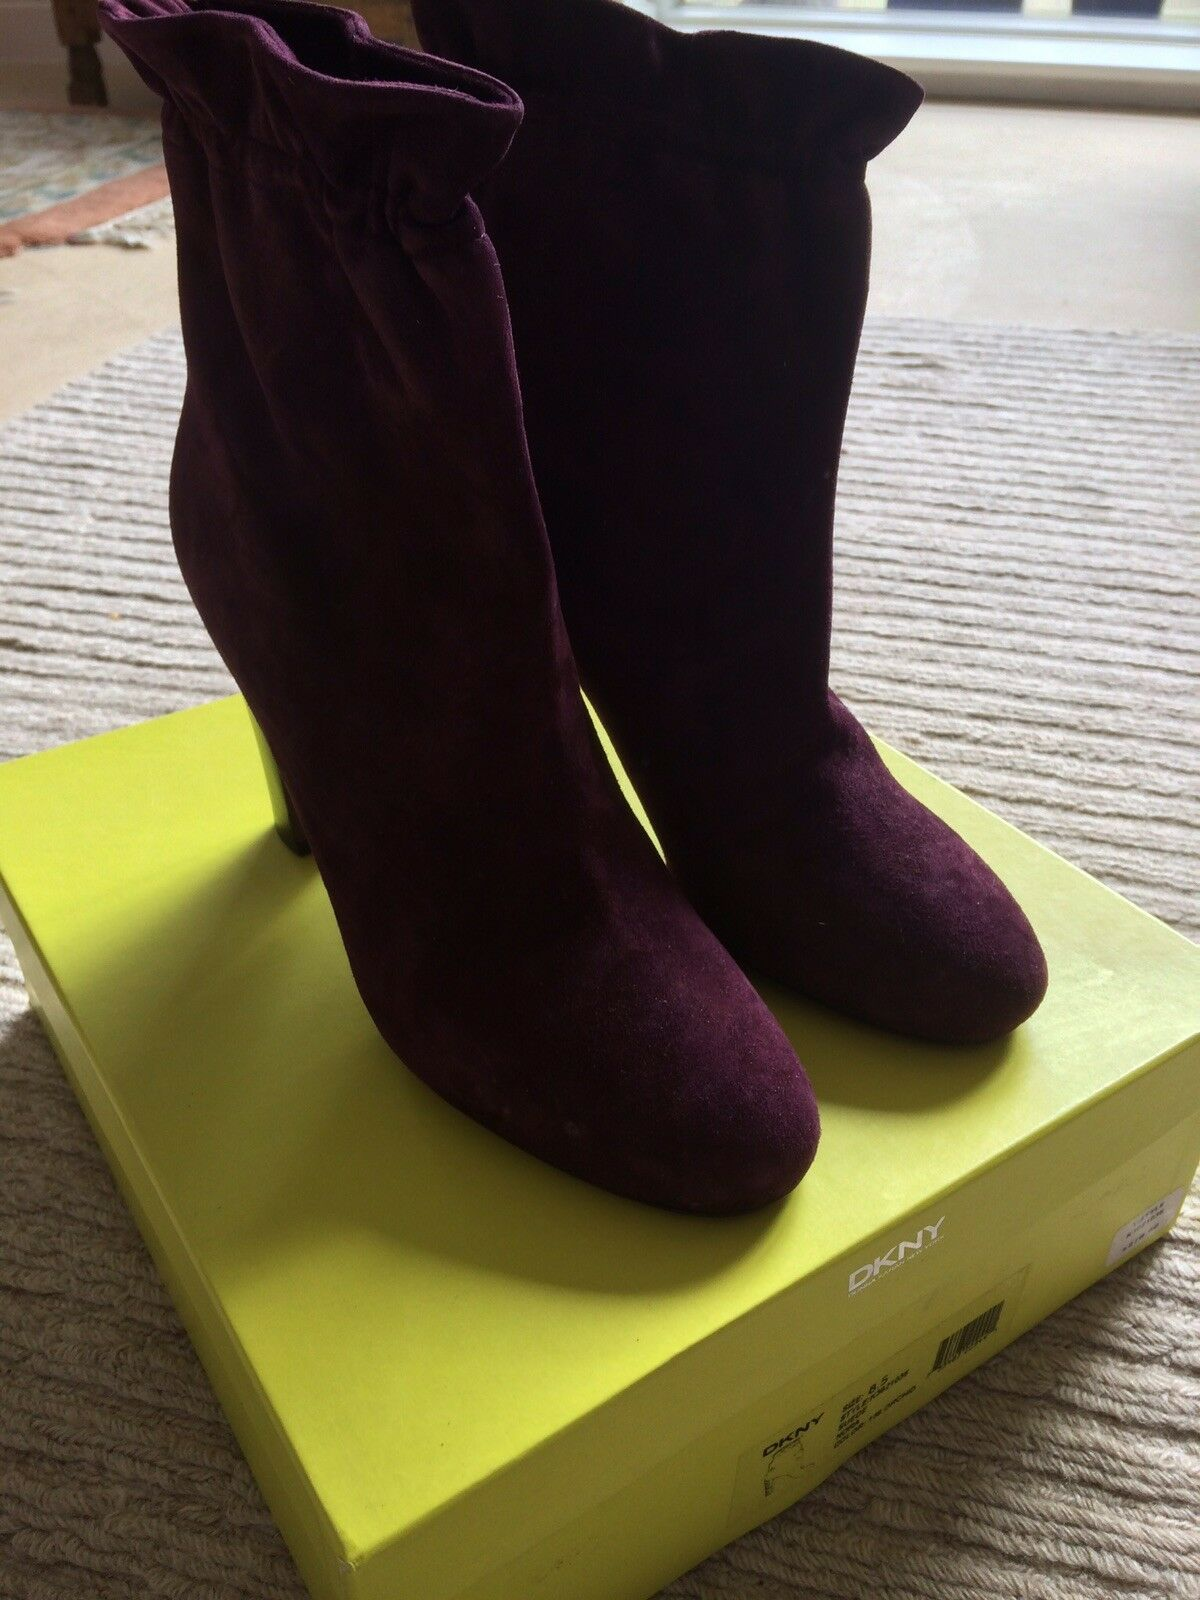 DKNY Suede Stiefel Uk Uk Uk 6.5 New In Box ed6353